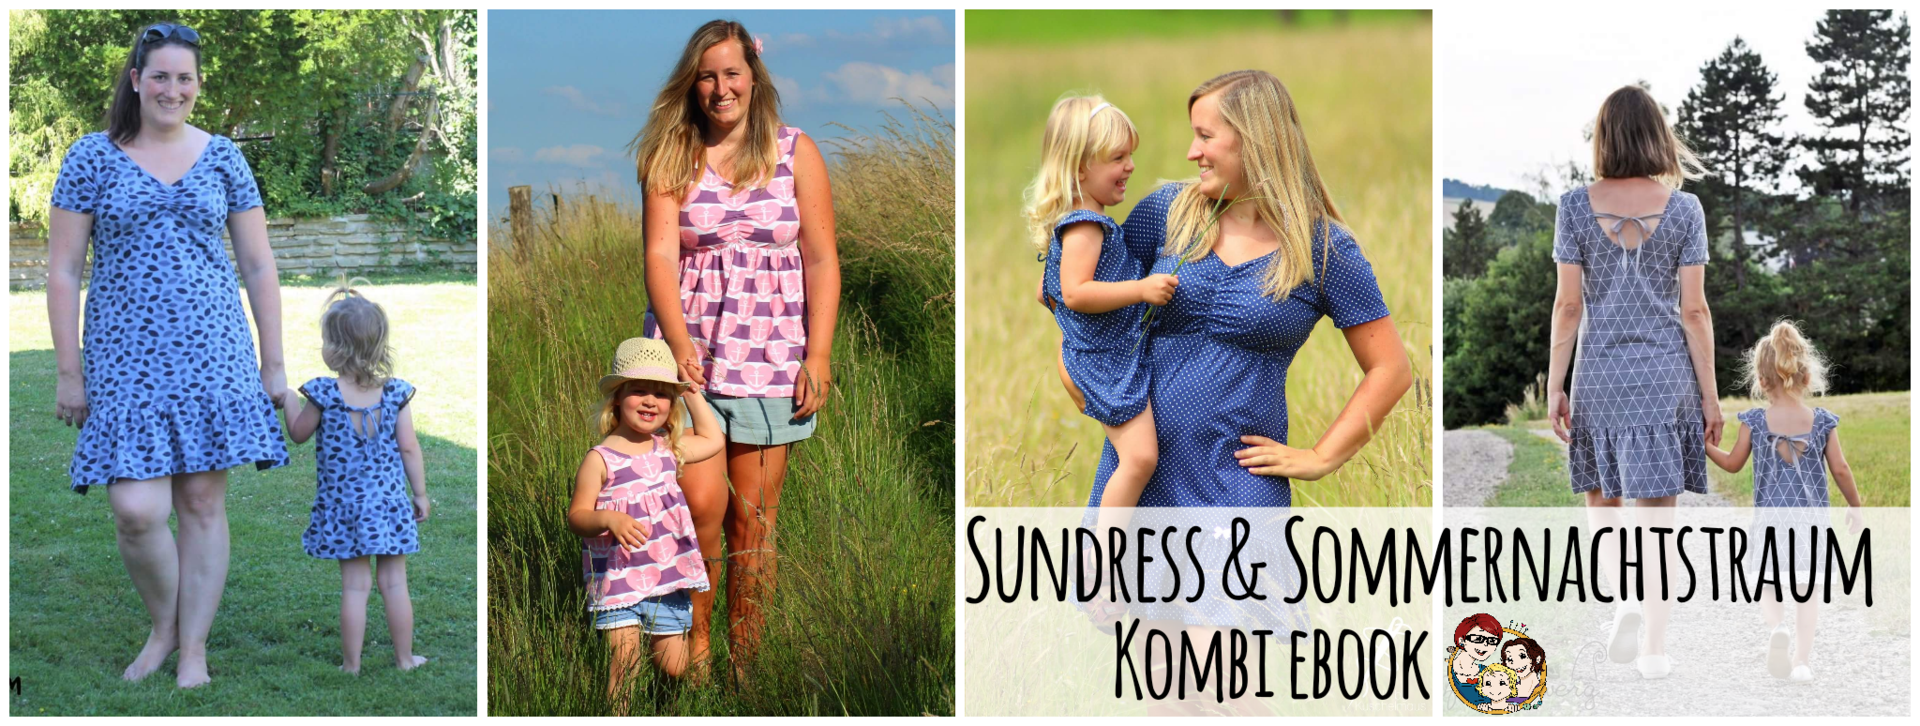 Sundress & Sommernachtstraum Kombi-Ebook